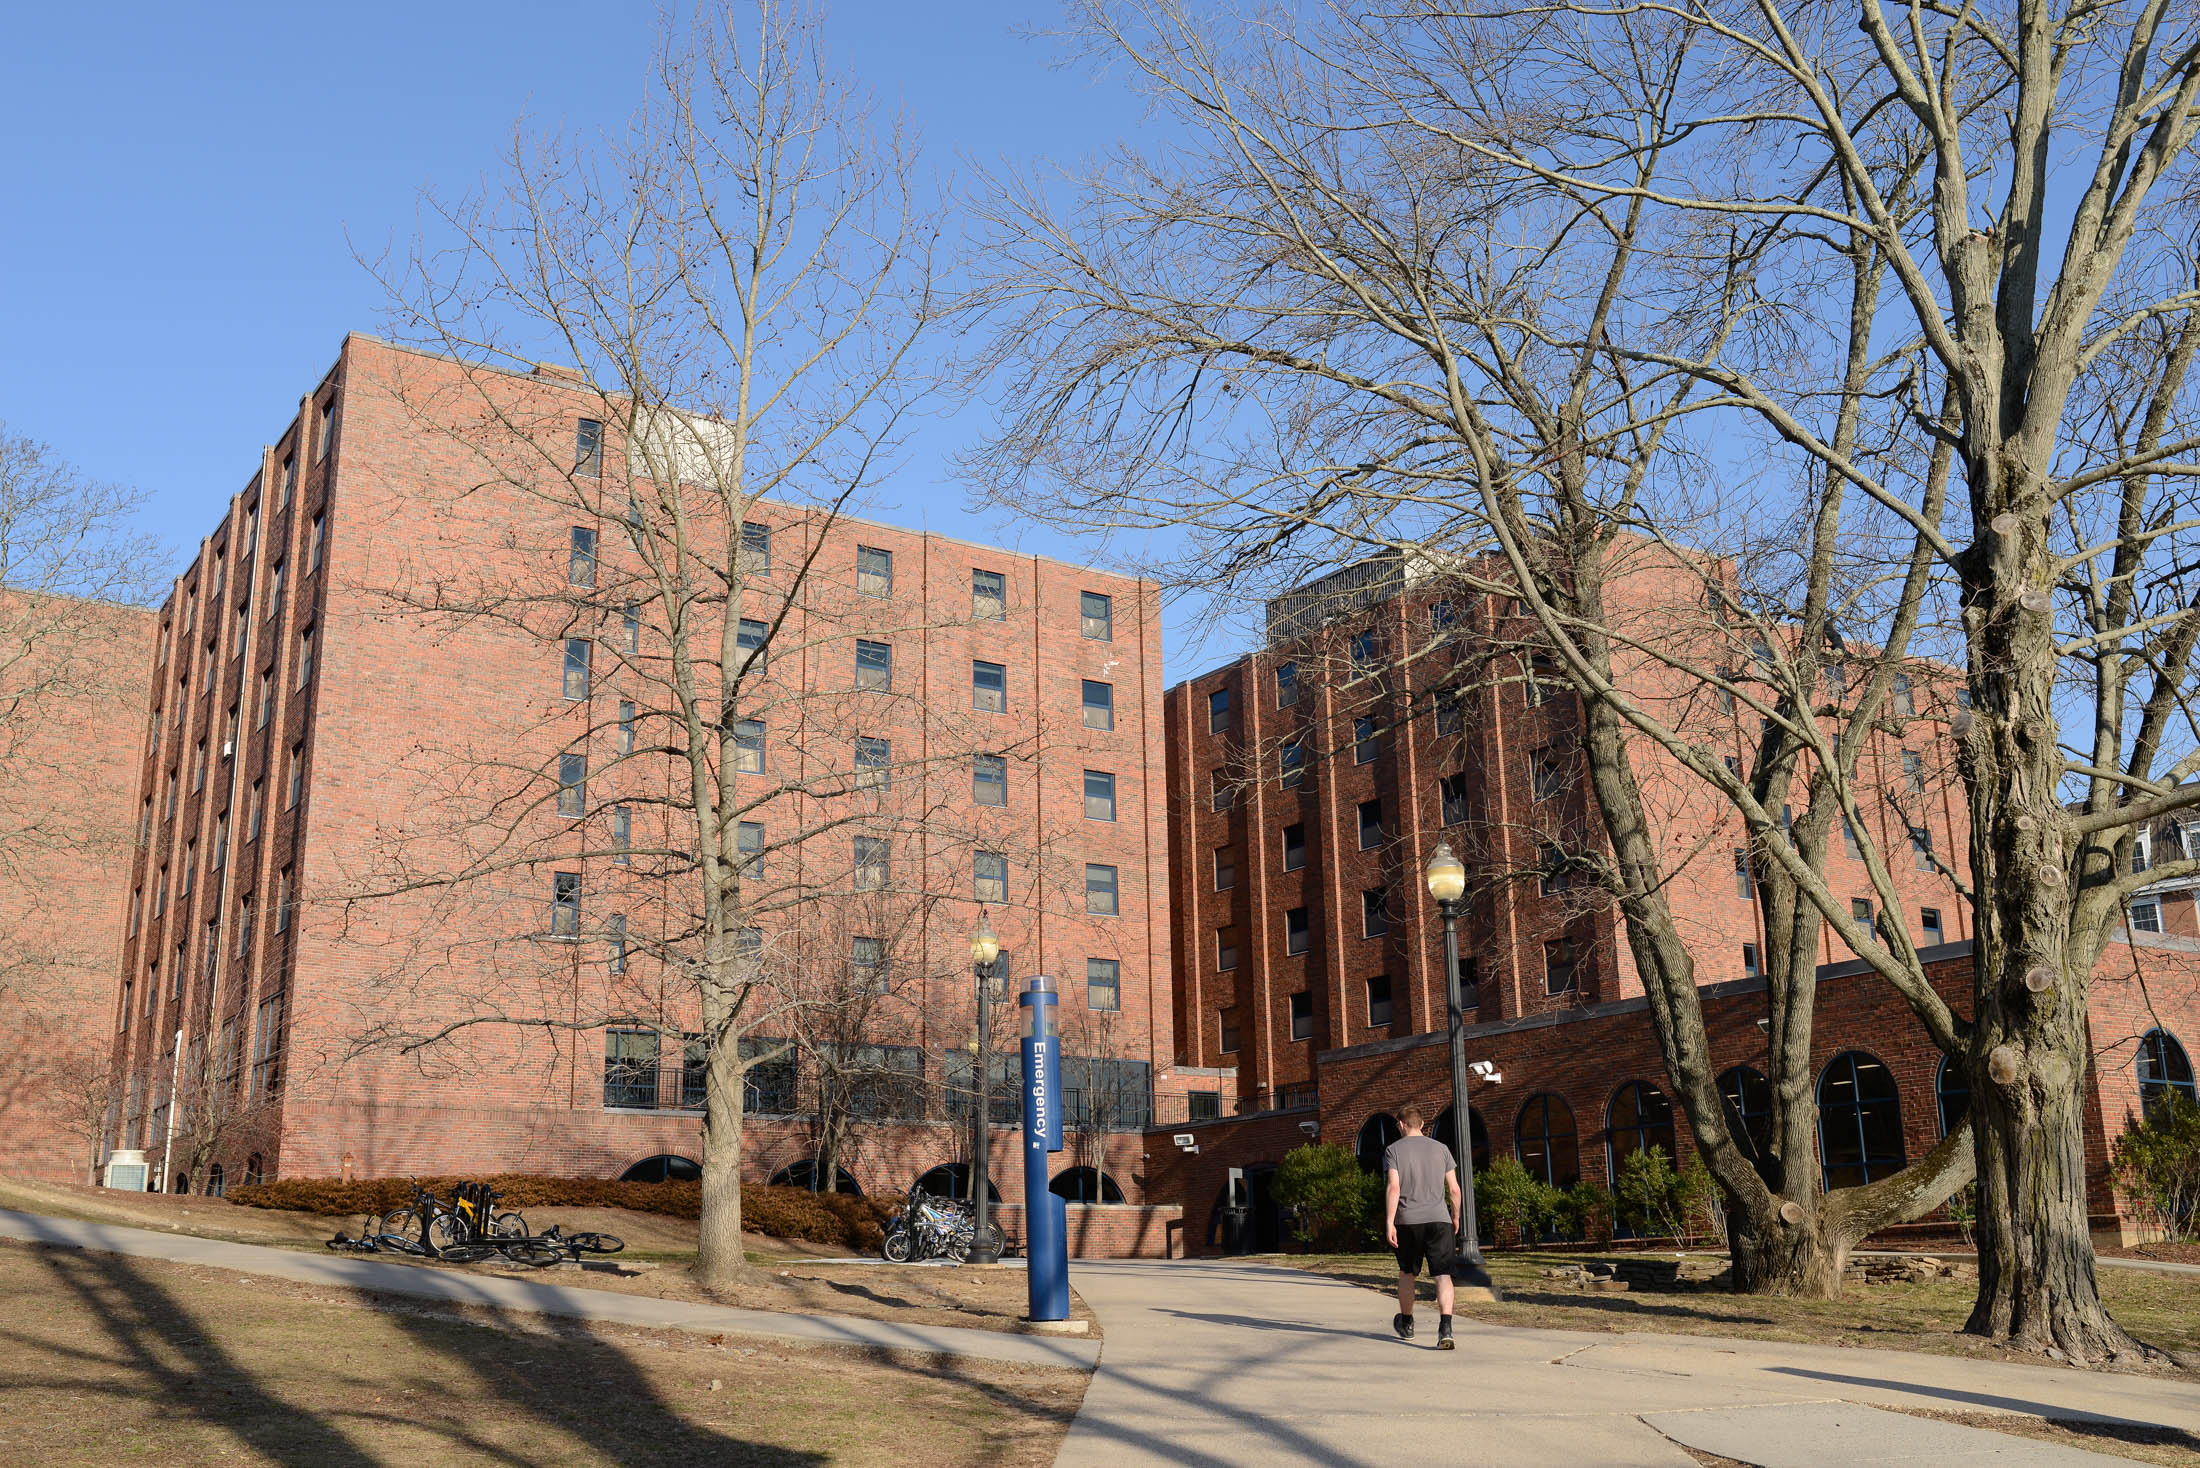 Students in residence halls across campus including Buckley Hall found discolored water in their their toilets and sinks on Wednesday mornings. Students have been plagued by water issues throughout the semester. (Jason Jiang/The Daily Campus)